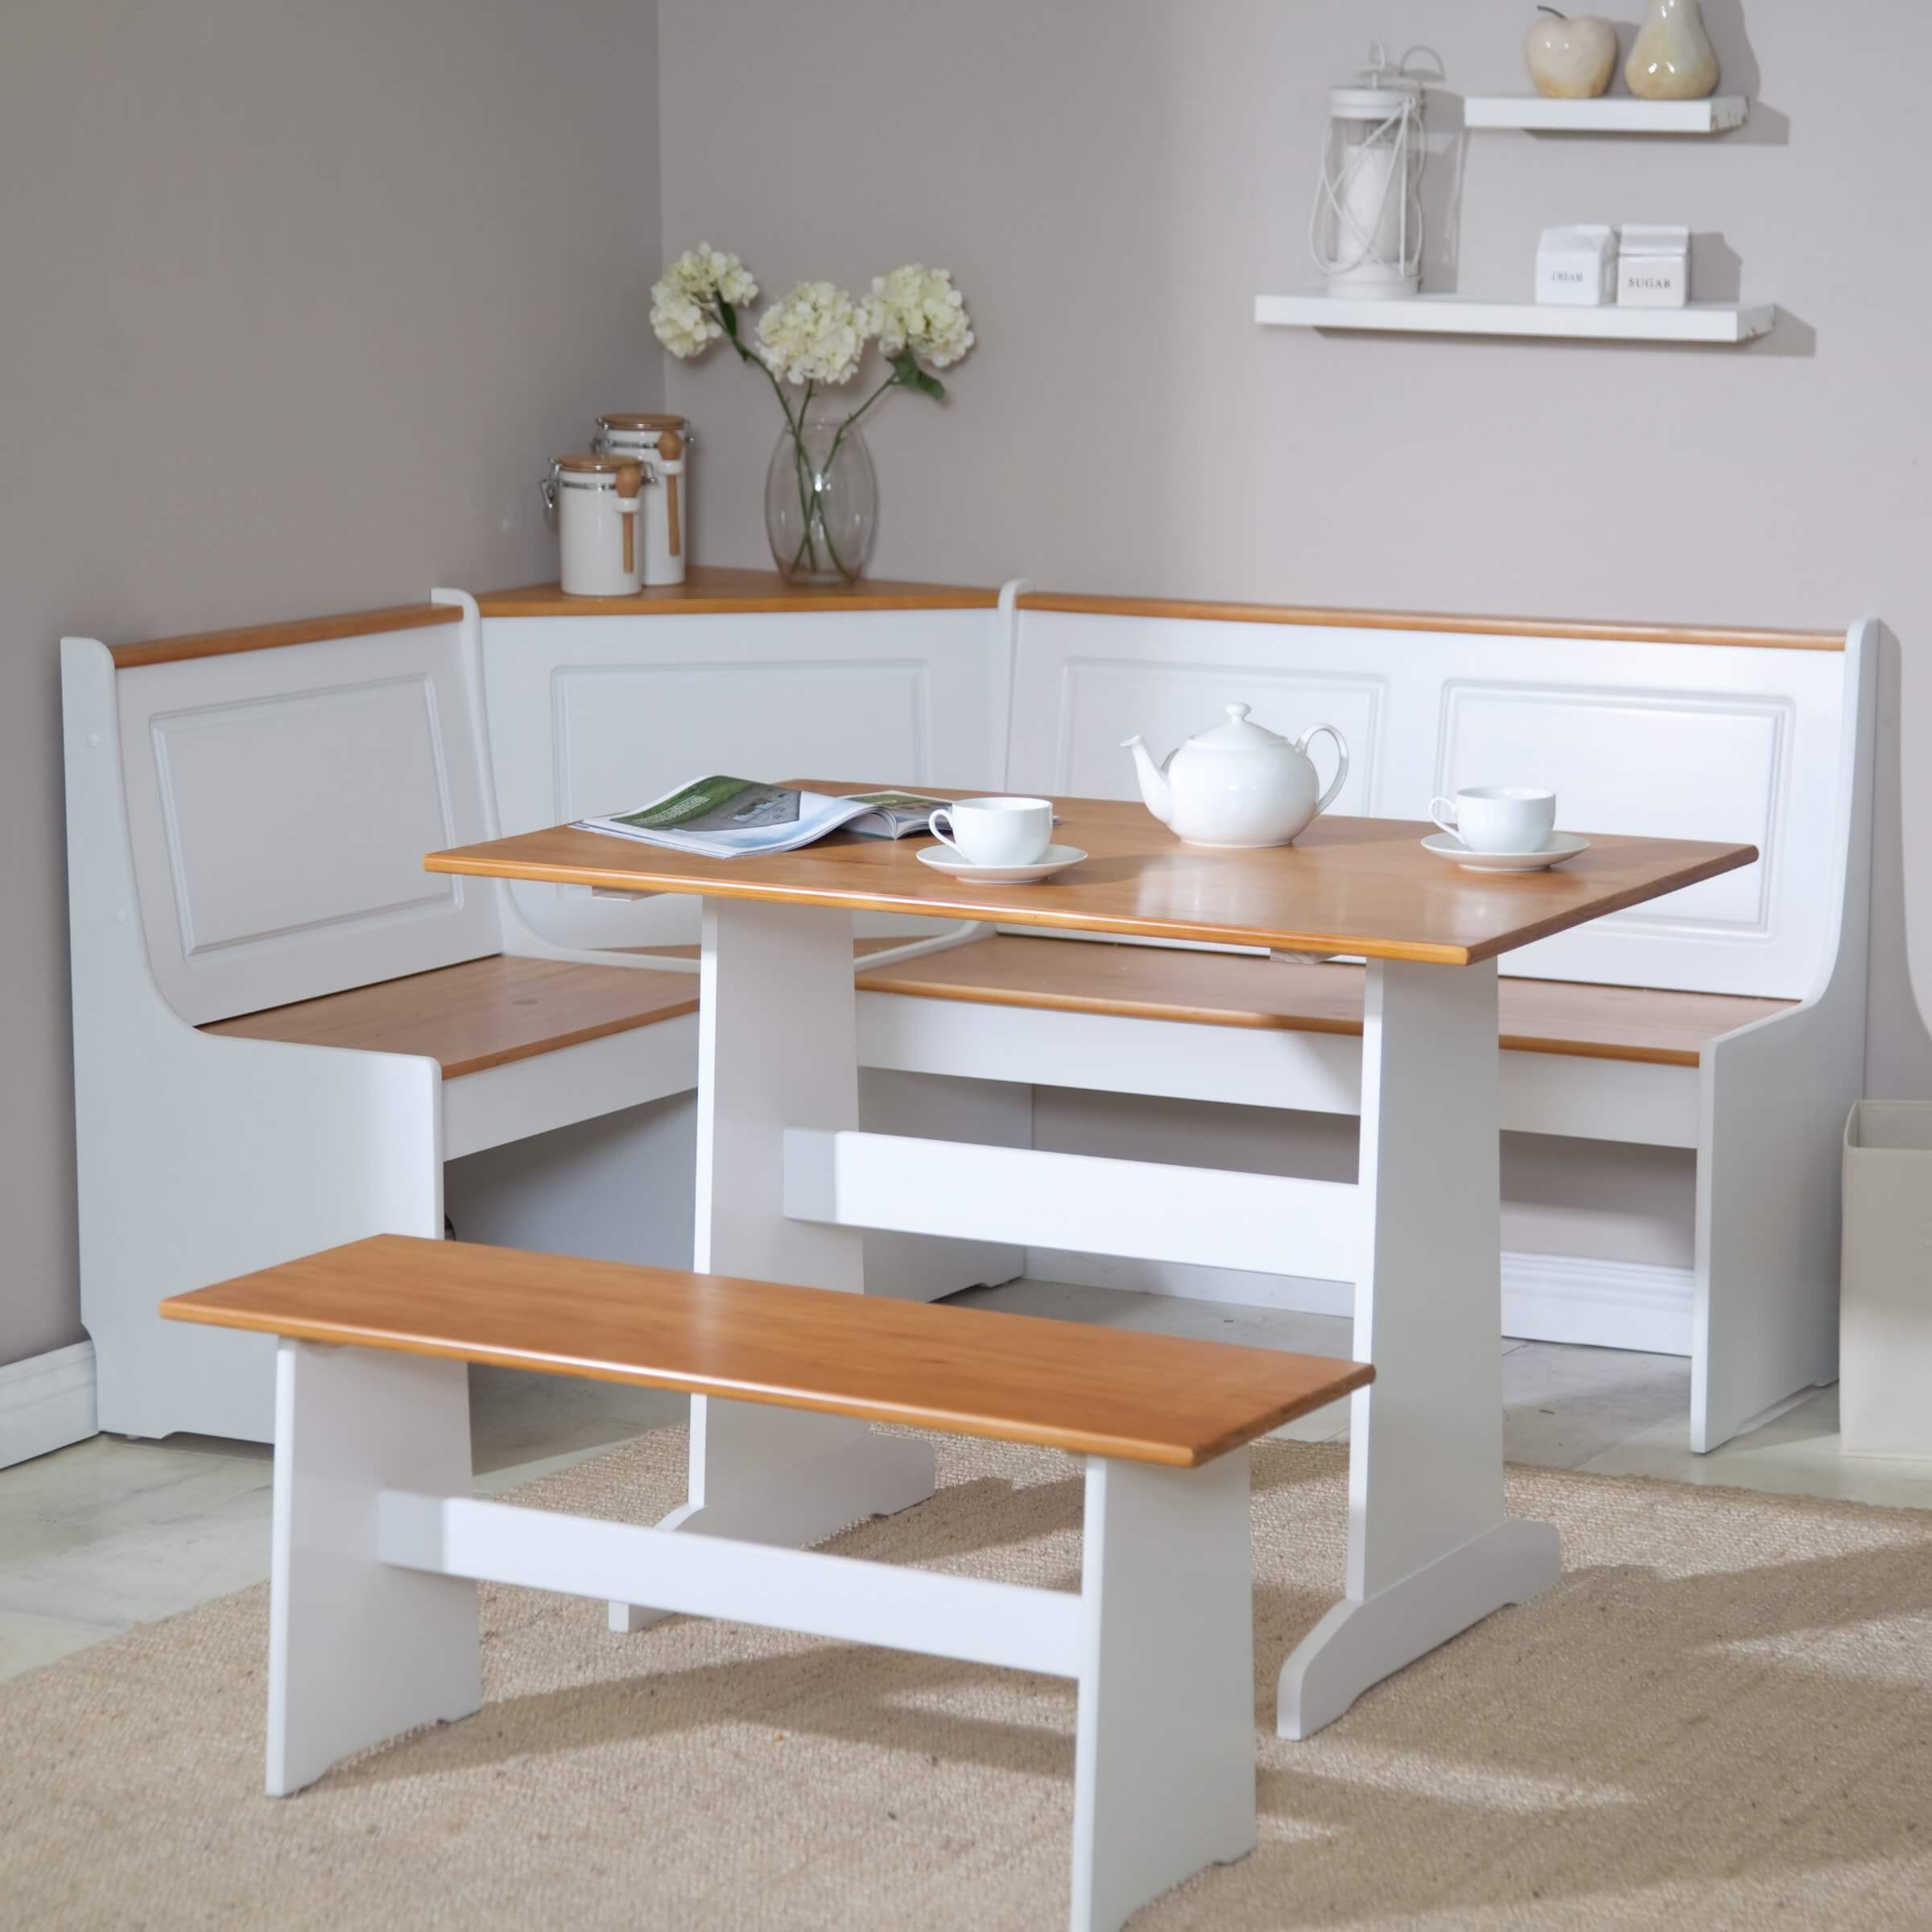 3 ardmore breakfast nook set - Booth Kitchen Tables